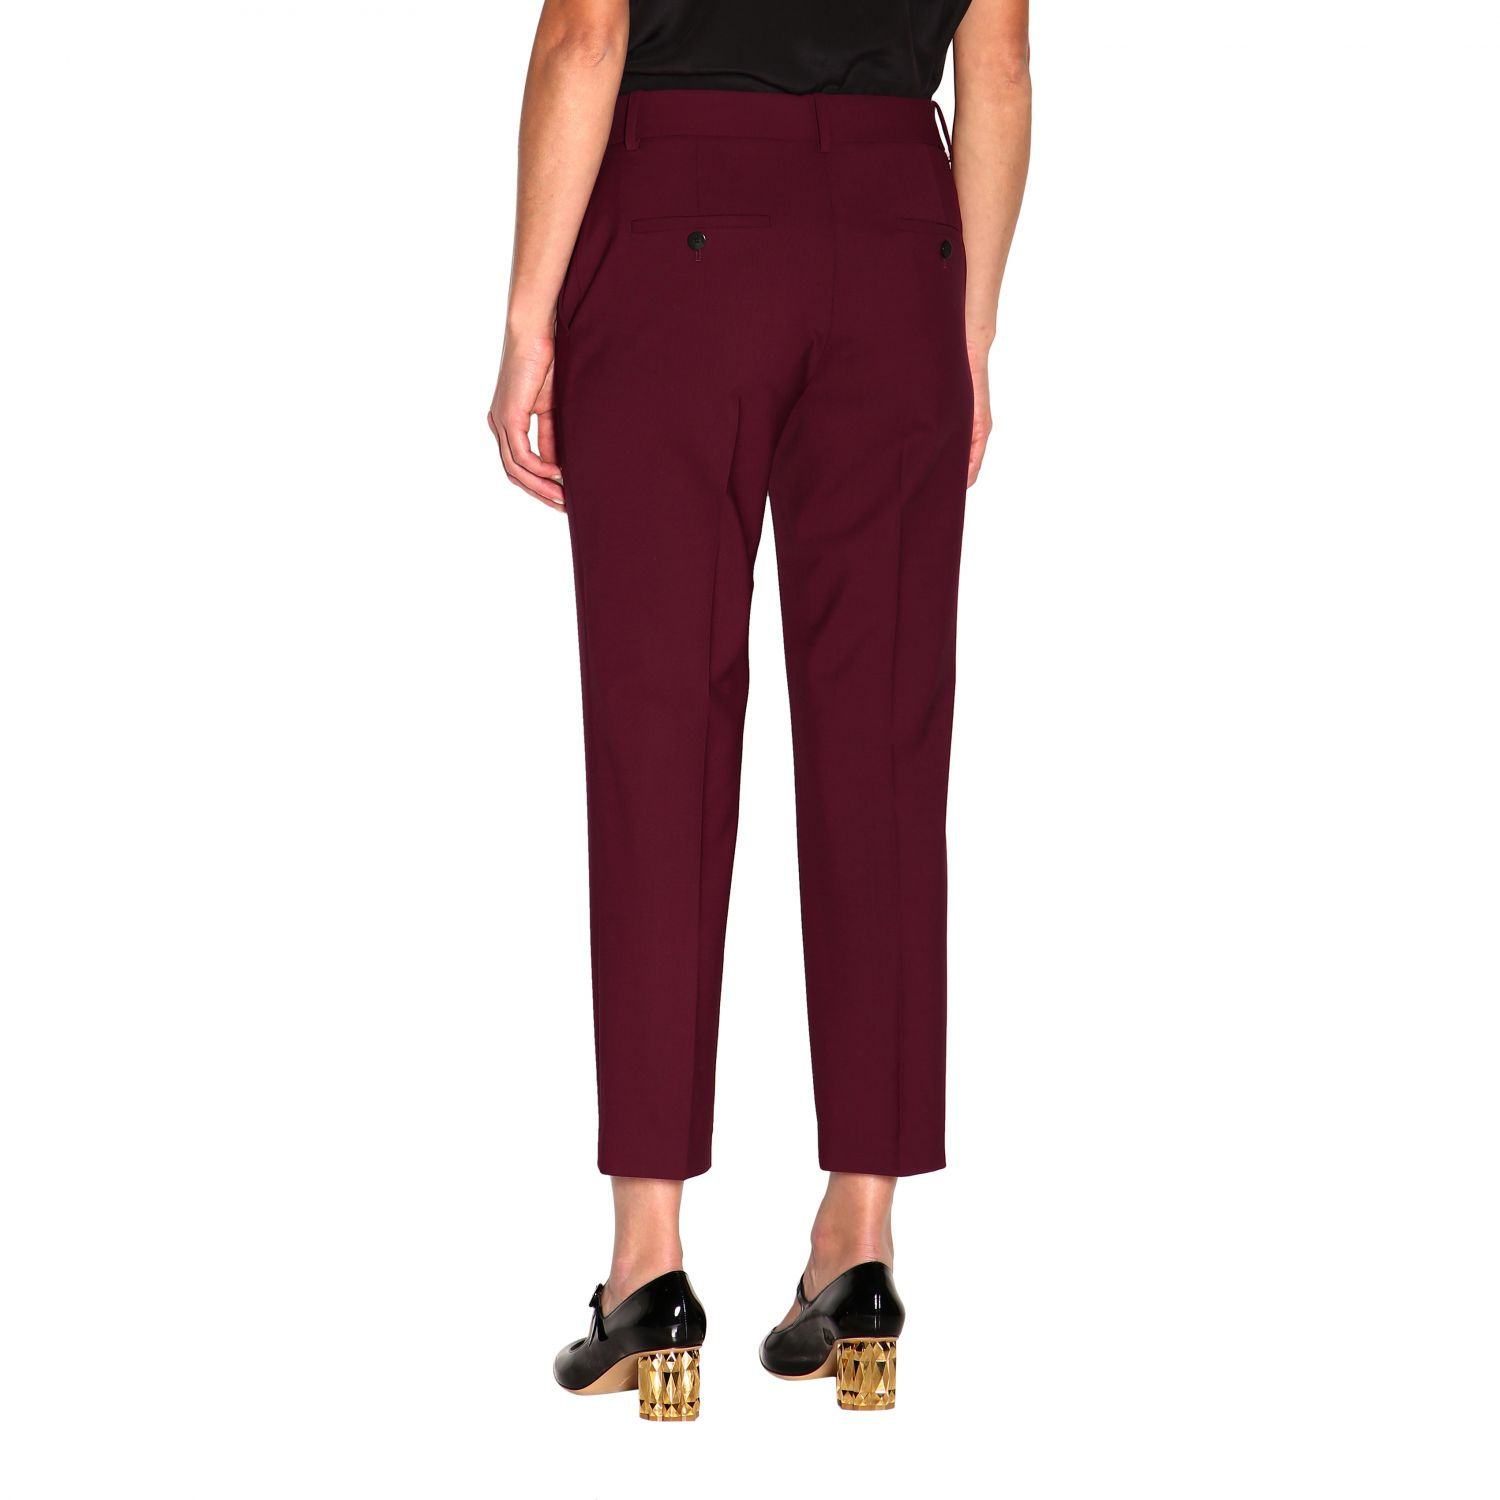 Trousers women Theory burgundy 3